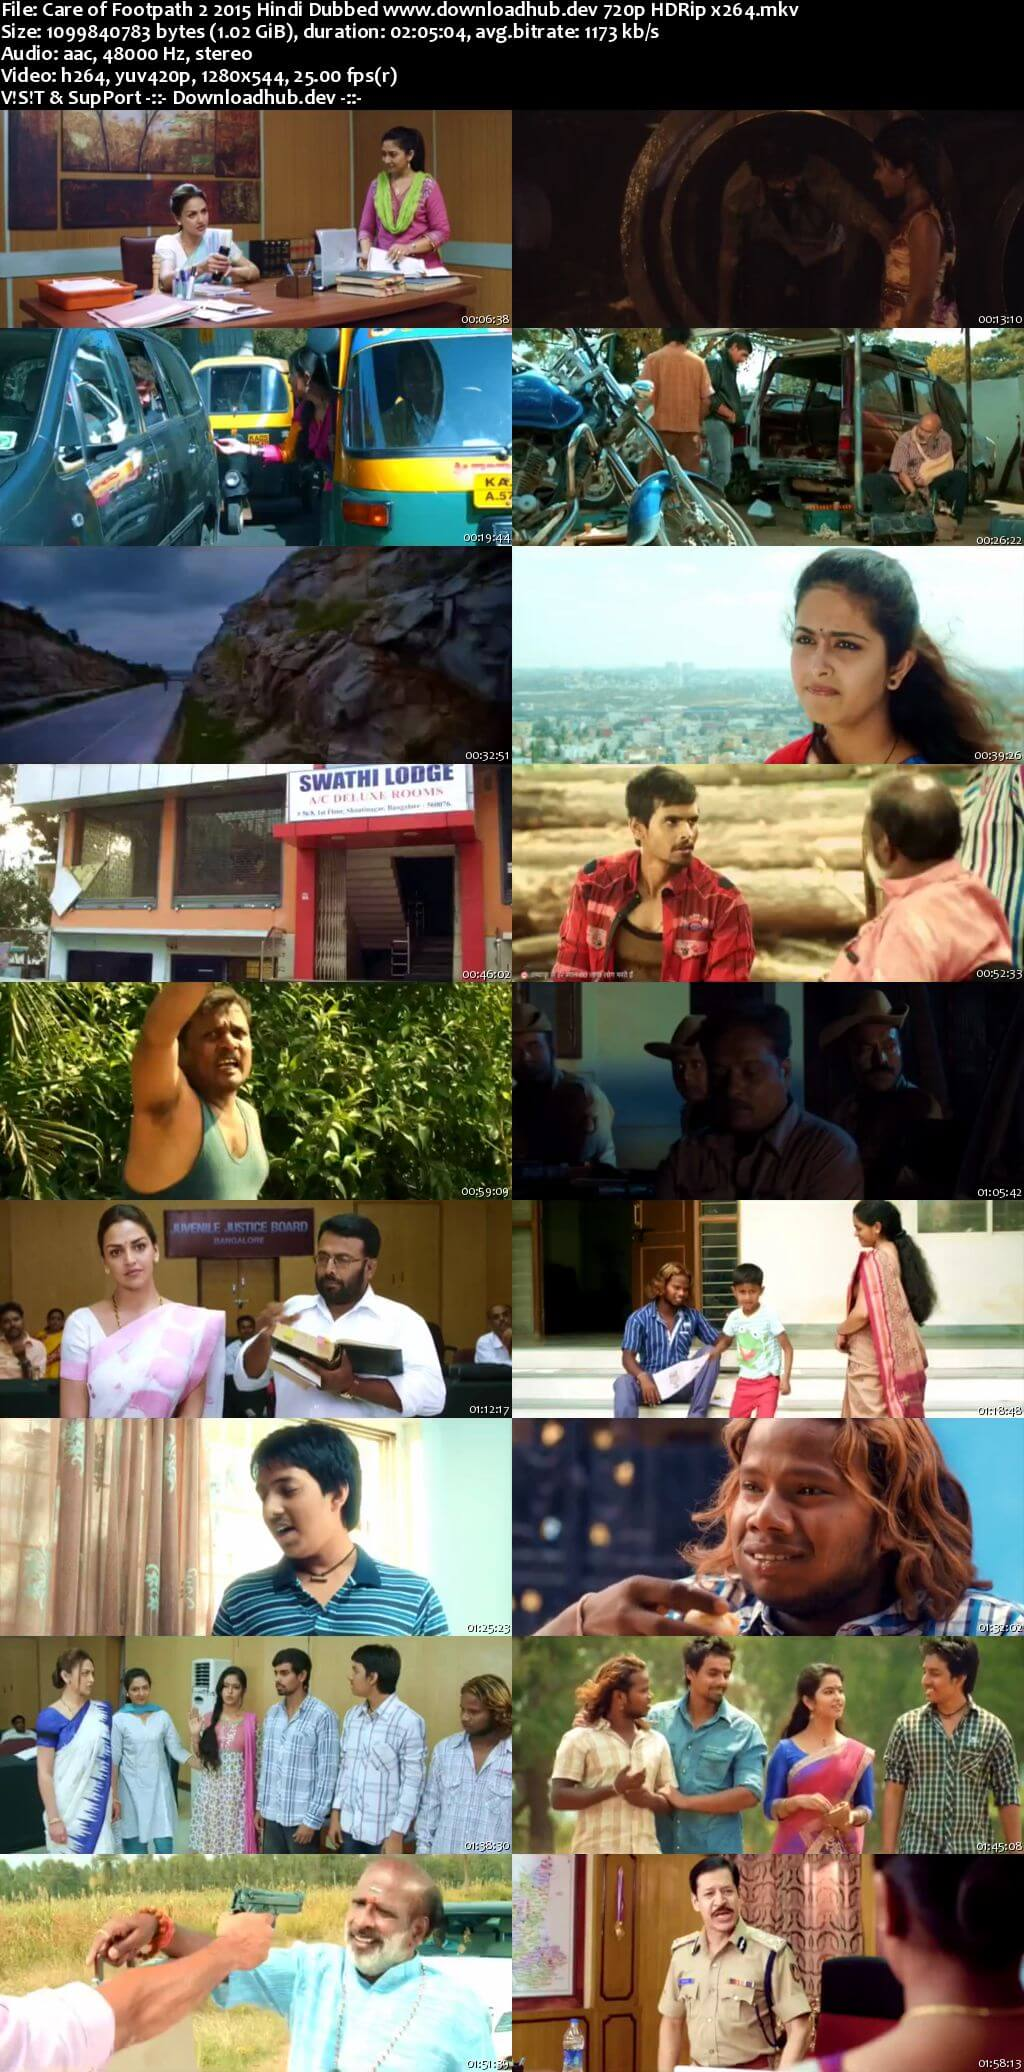 Care of Footpath 2 2015 Hindi Dubbed 720p SDTVRip x264